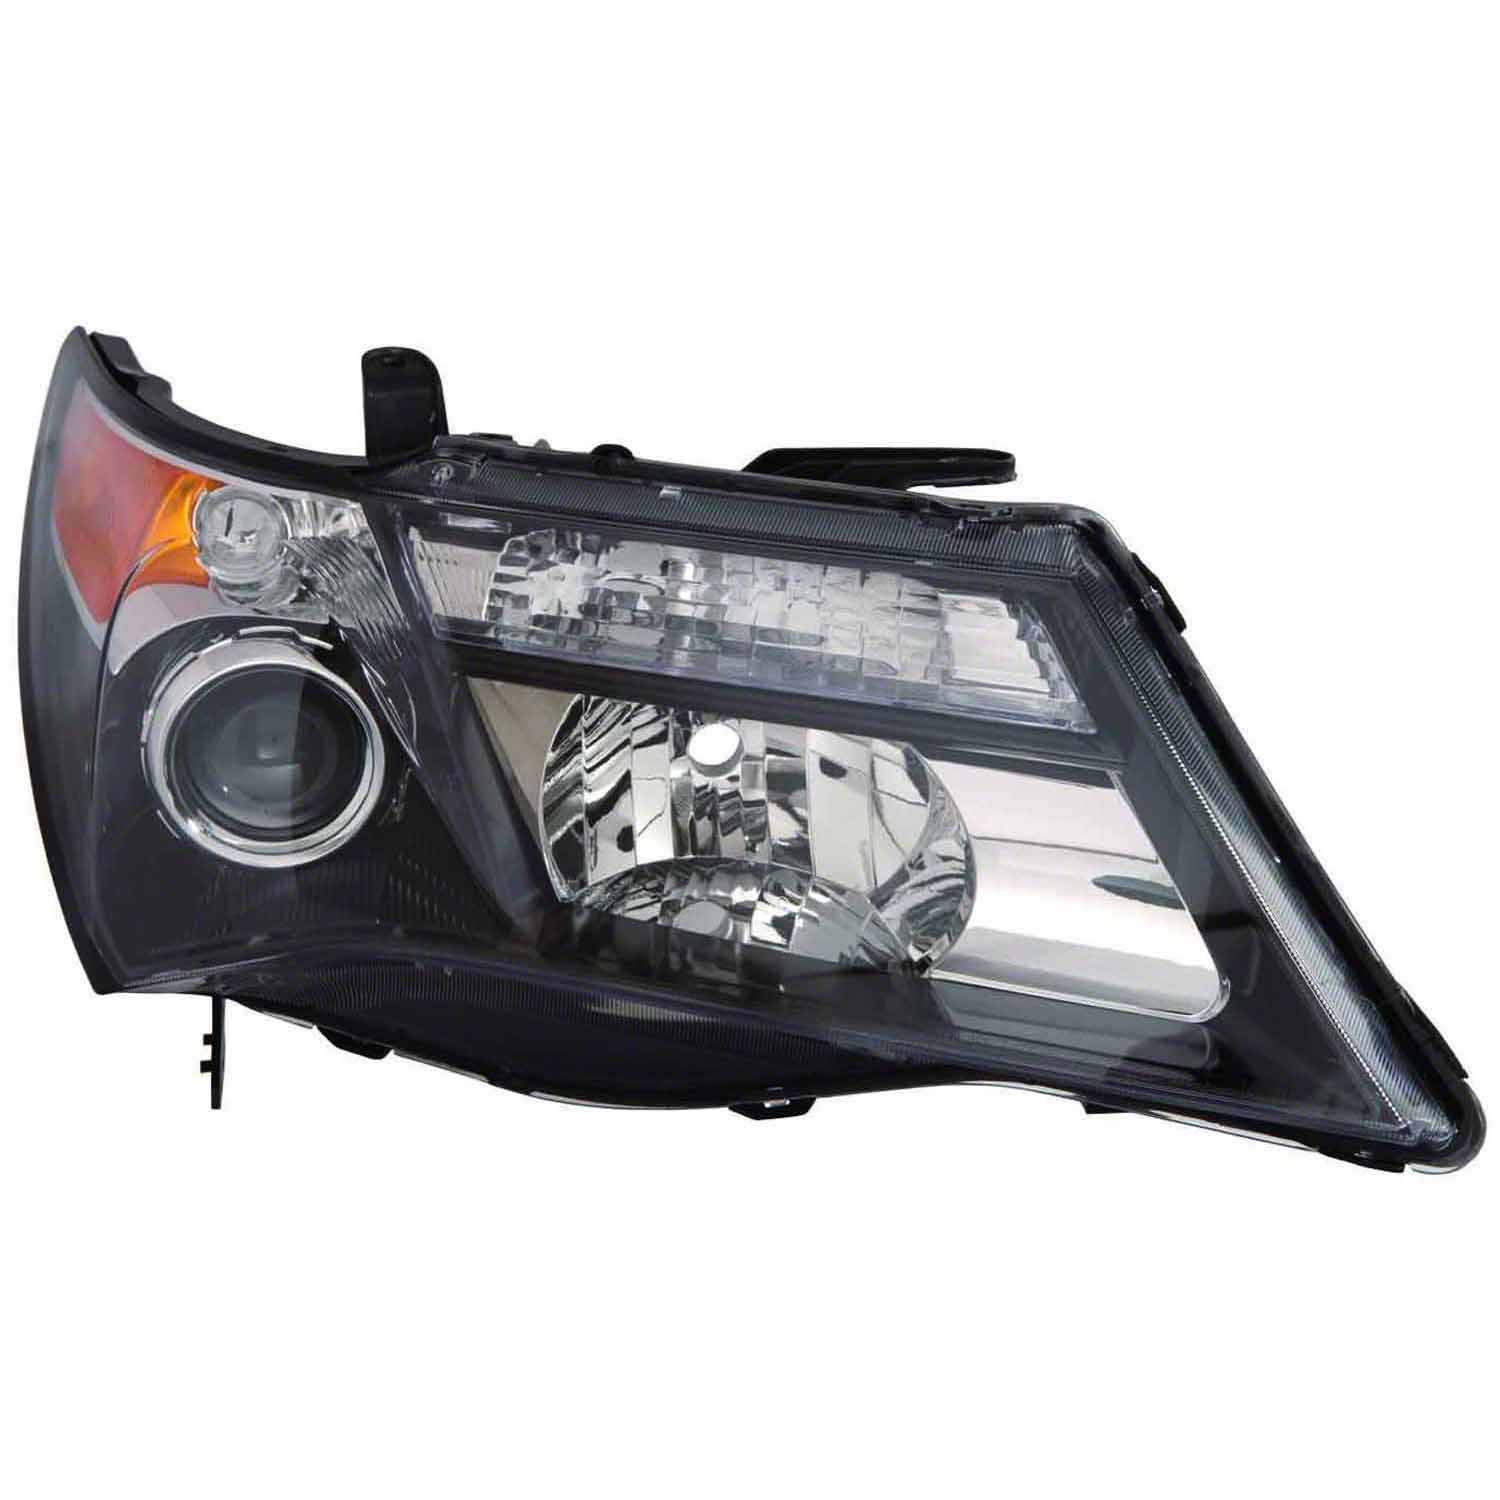 AC2519120OE New OEM Passenger Side Headlight Lens Housing